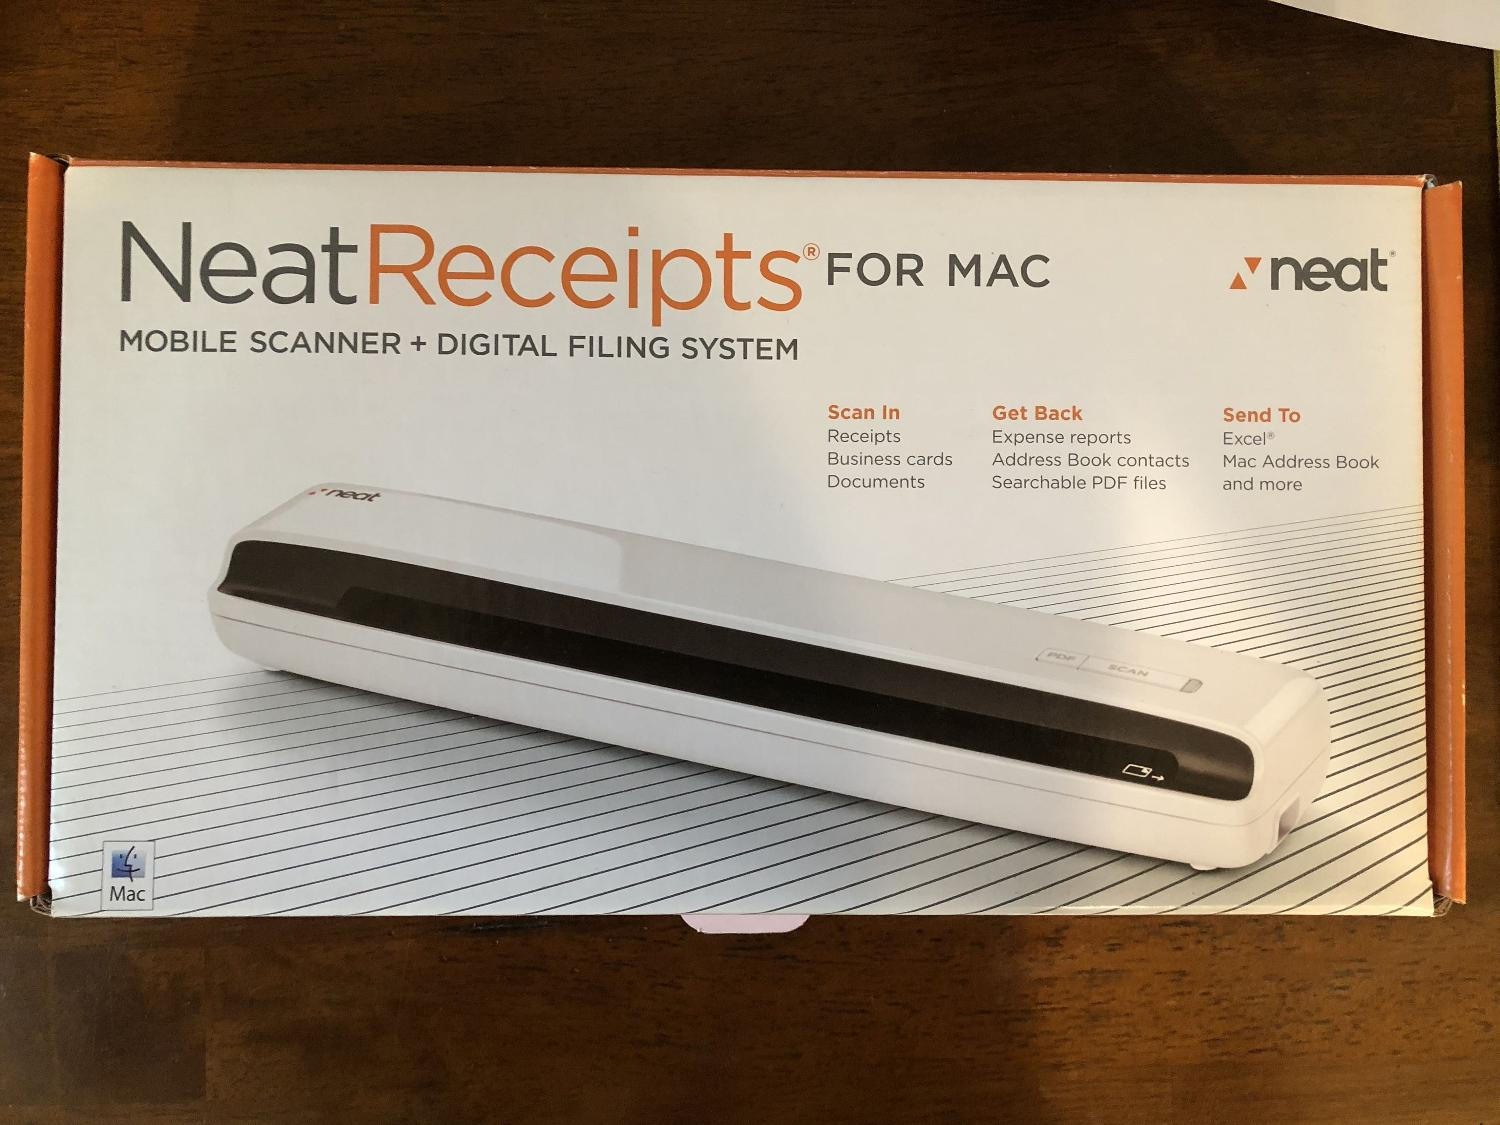 Best neatreceipts mobile scanner for sale in nashville tennessee best neatreceipts mobile scanner for sale in nashville tennessee for 2018 colourmoves